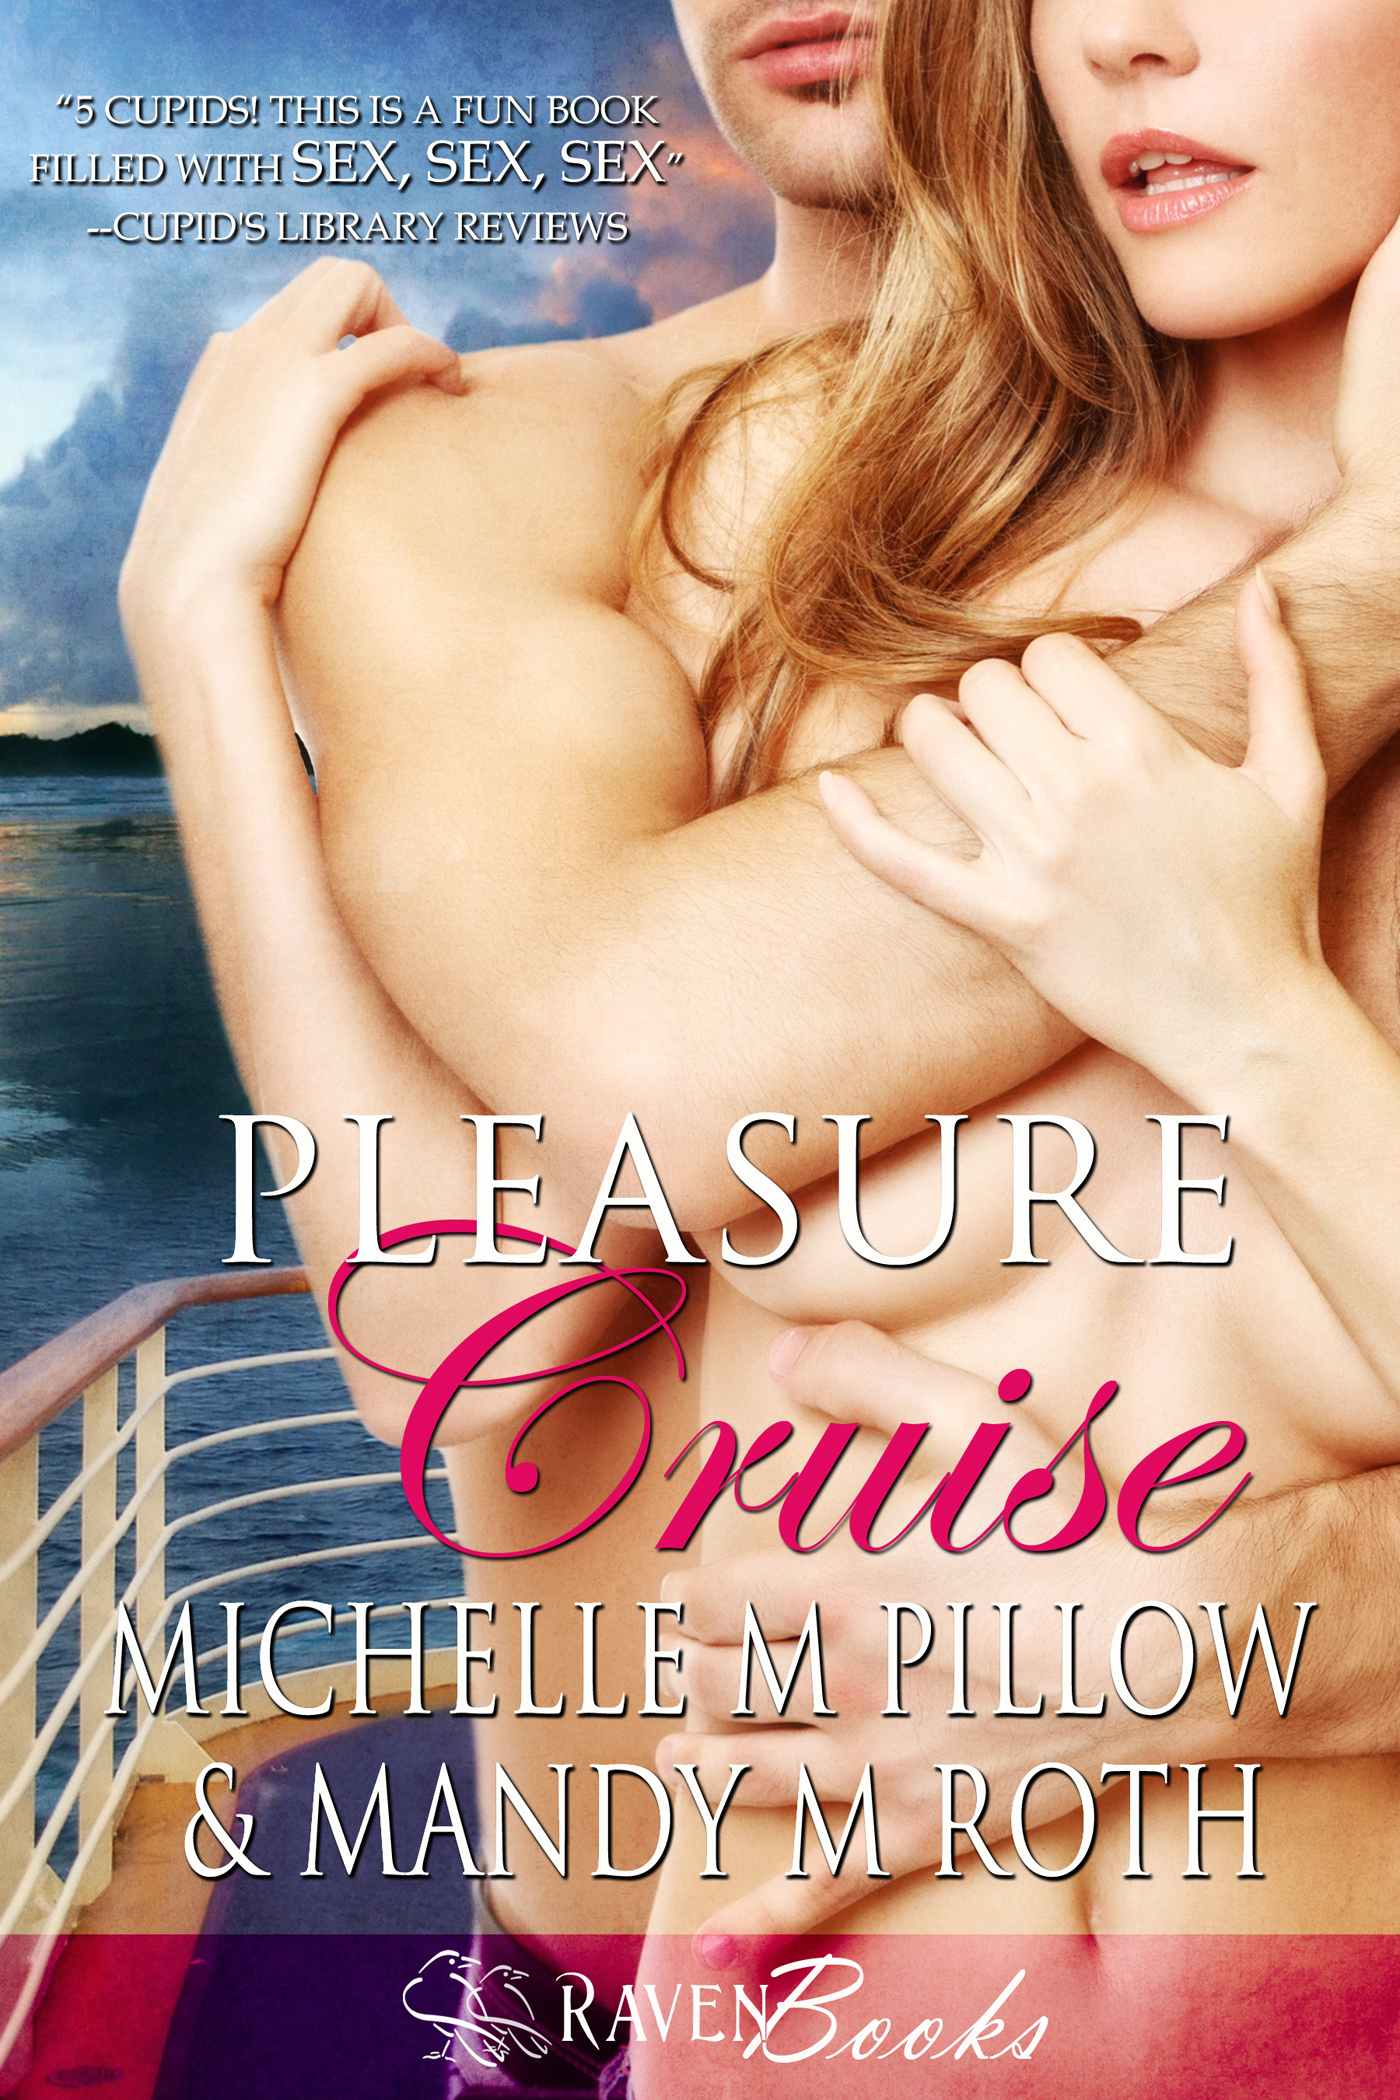 Michelle M. Pillow  Mandy M. Roth - Pleasure Cruise